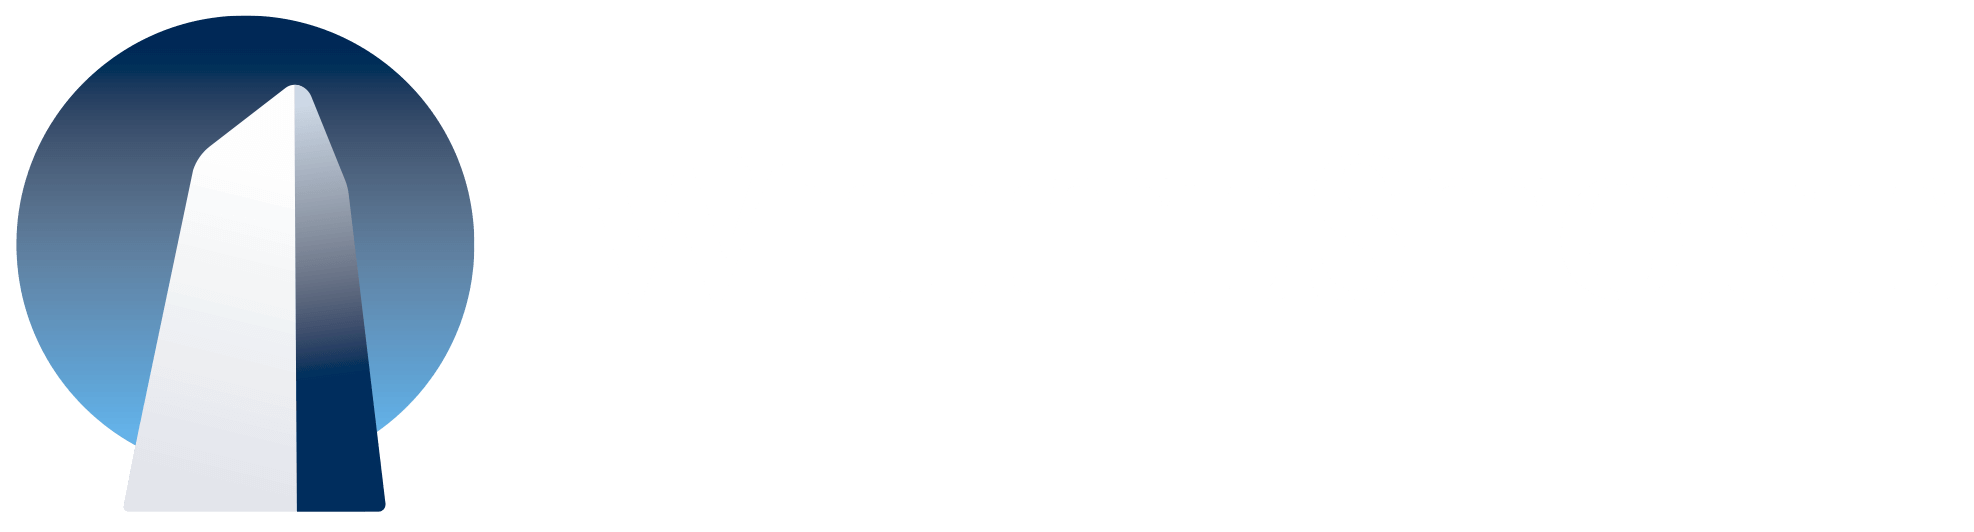 WhiteStone Wealth Management Services